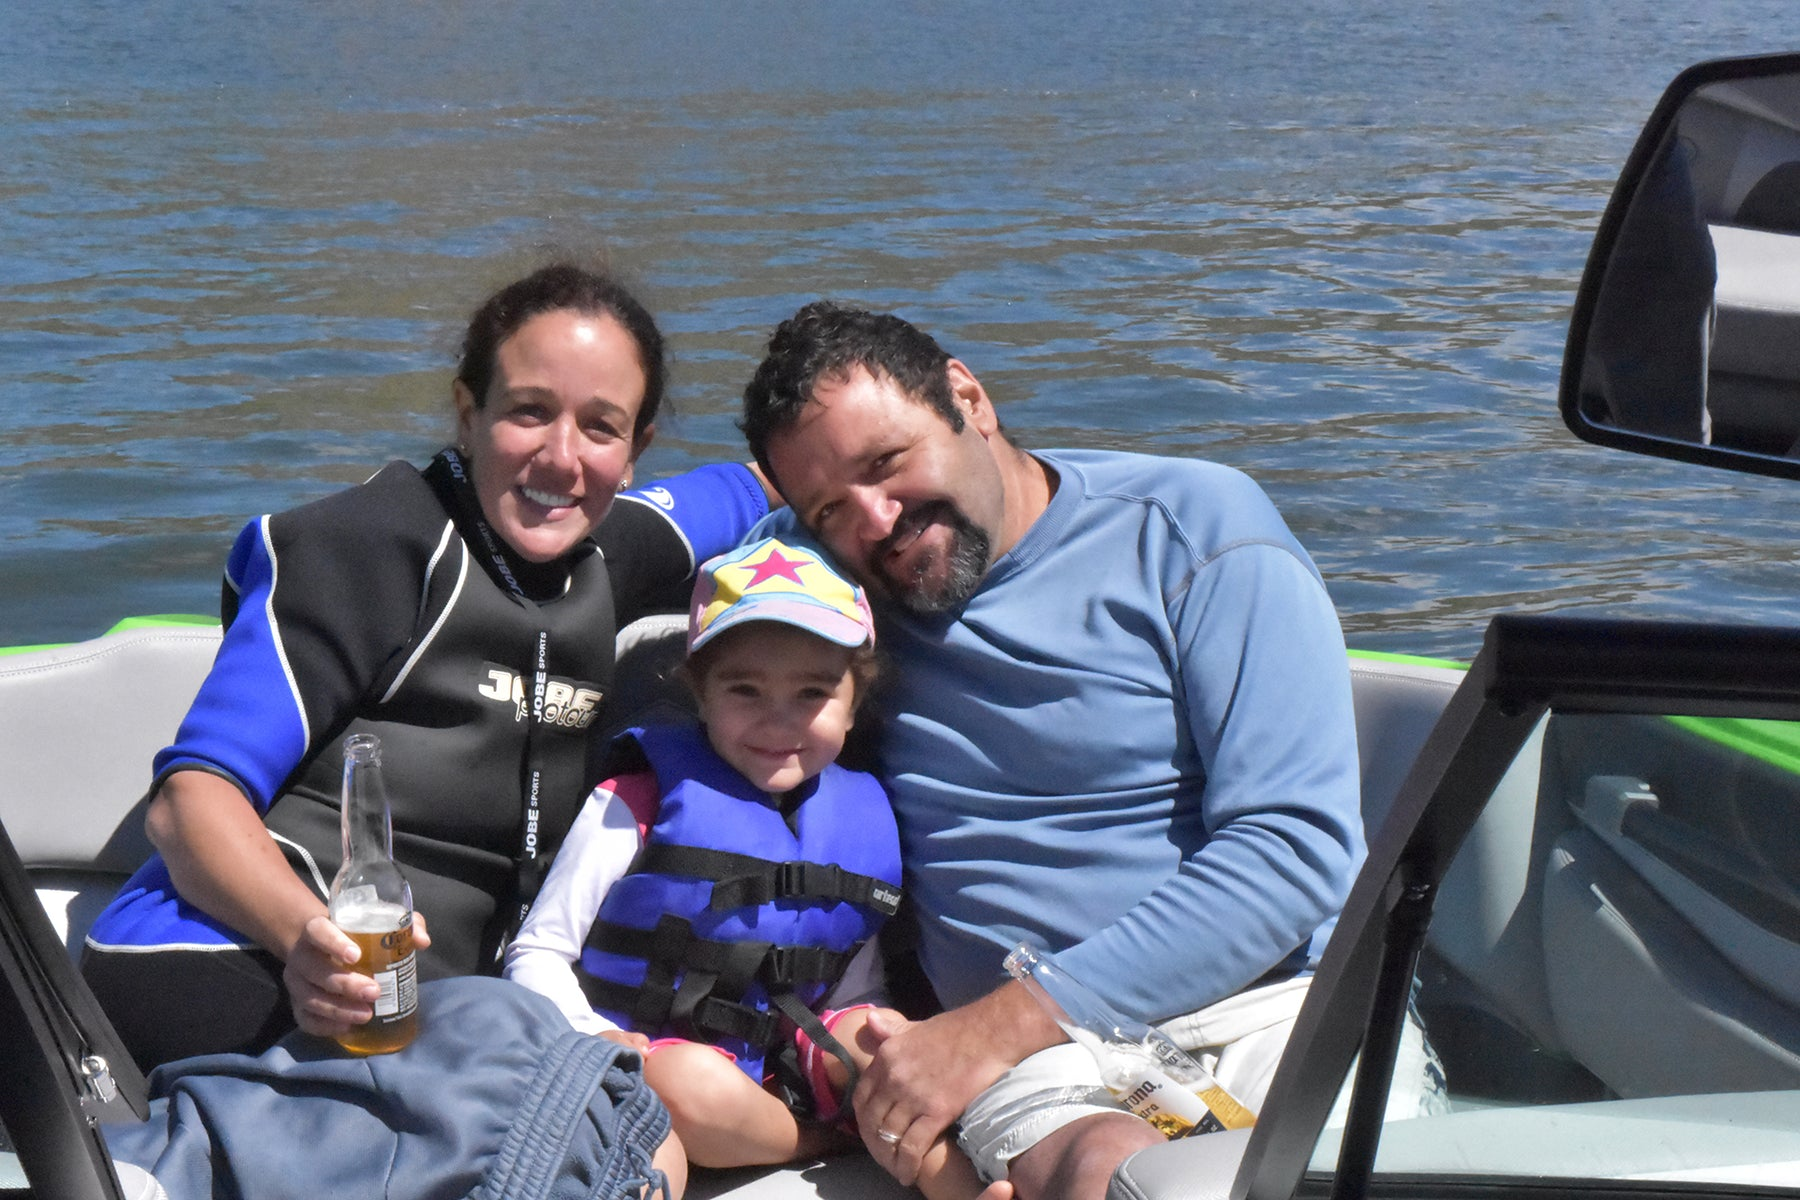 #WhyWeRide Giveaway Winners Enjoy a Day On The Lake With Marine Products